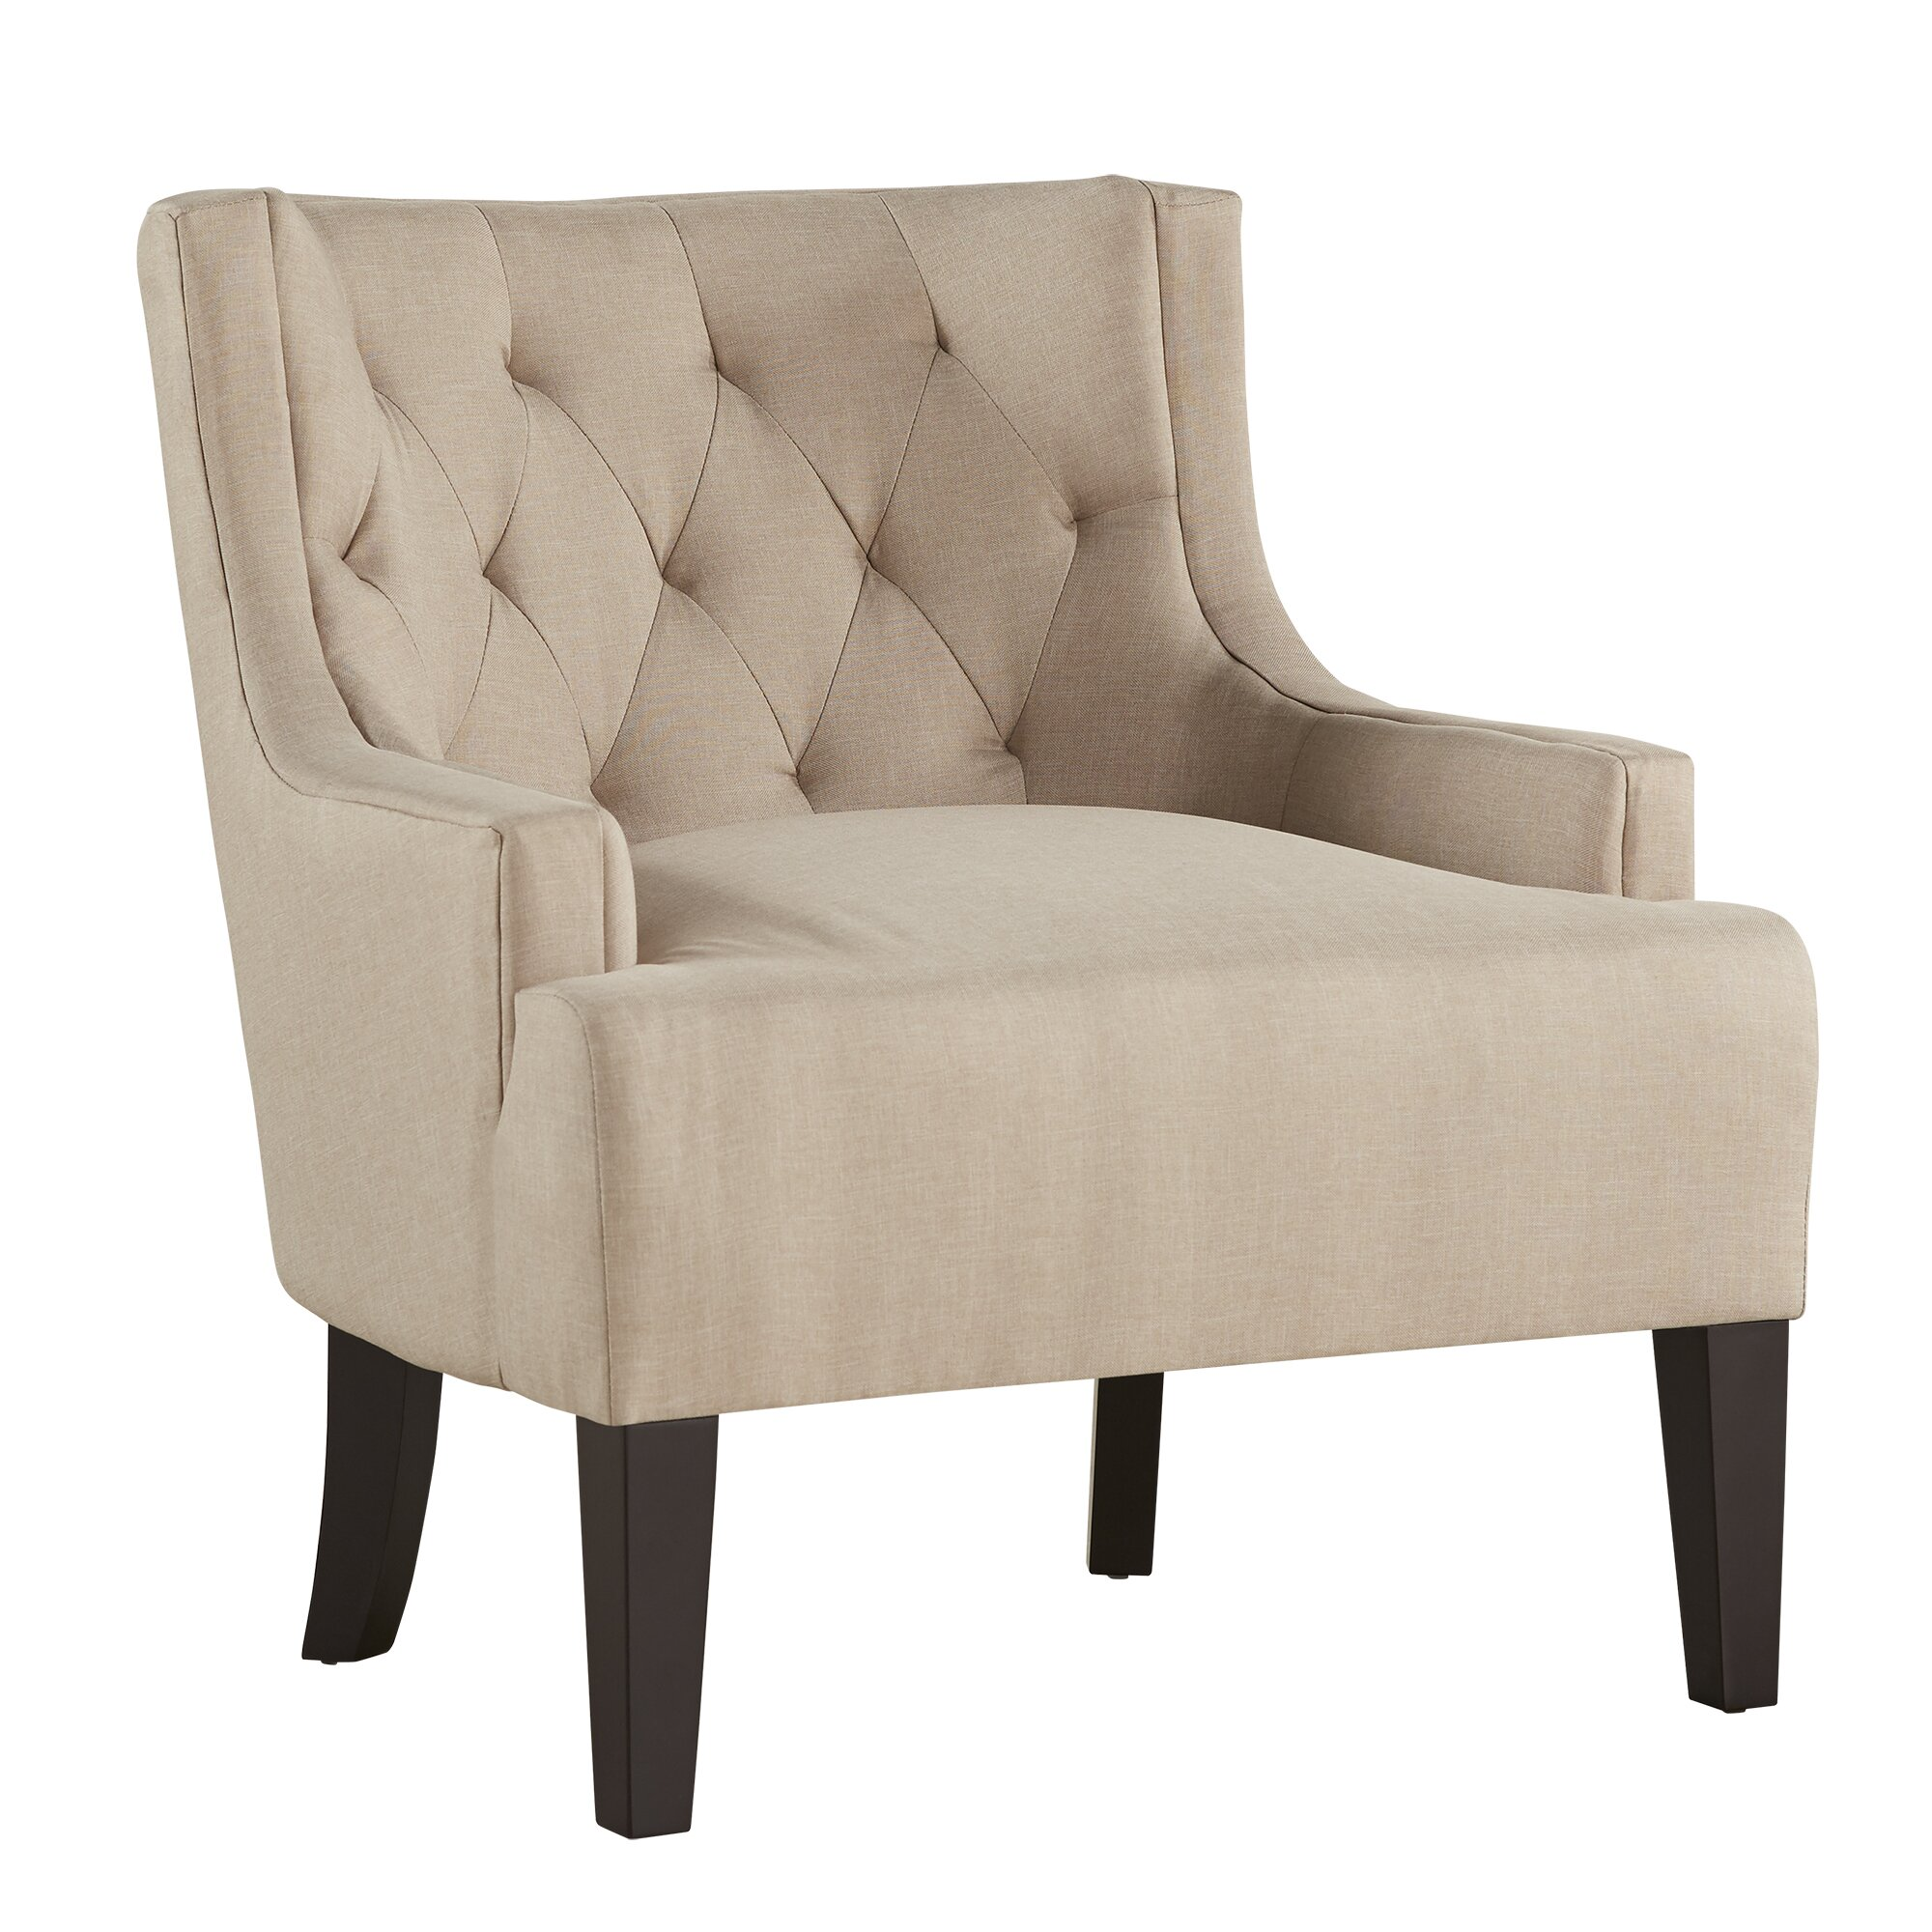 Charming Accent Desk Chair Kingstown Home Dawan Tufted Accent Arm Chair Reviews  Wayfair